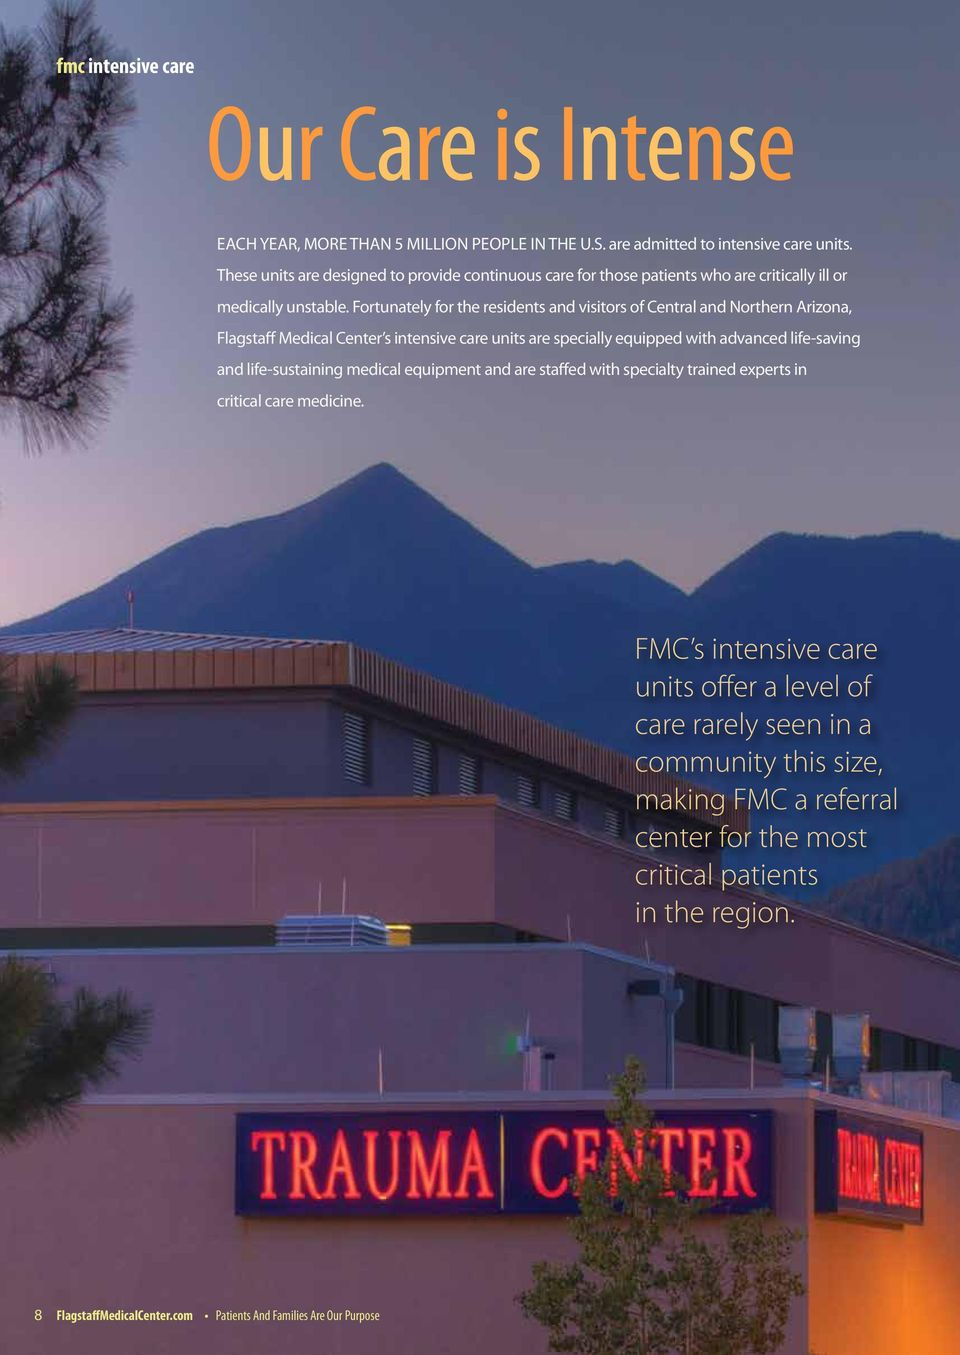 Fortunately for the residents and visitors of Central and Northern Arizona, Flagstaff Medical Center s intensive care units are specially equipped with advanced life-saving and